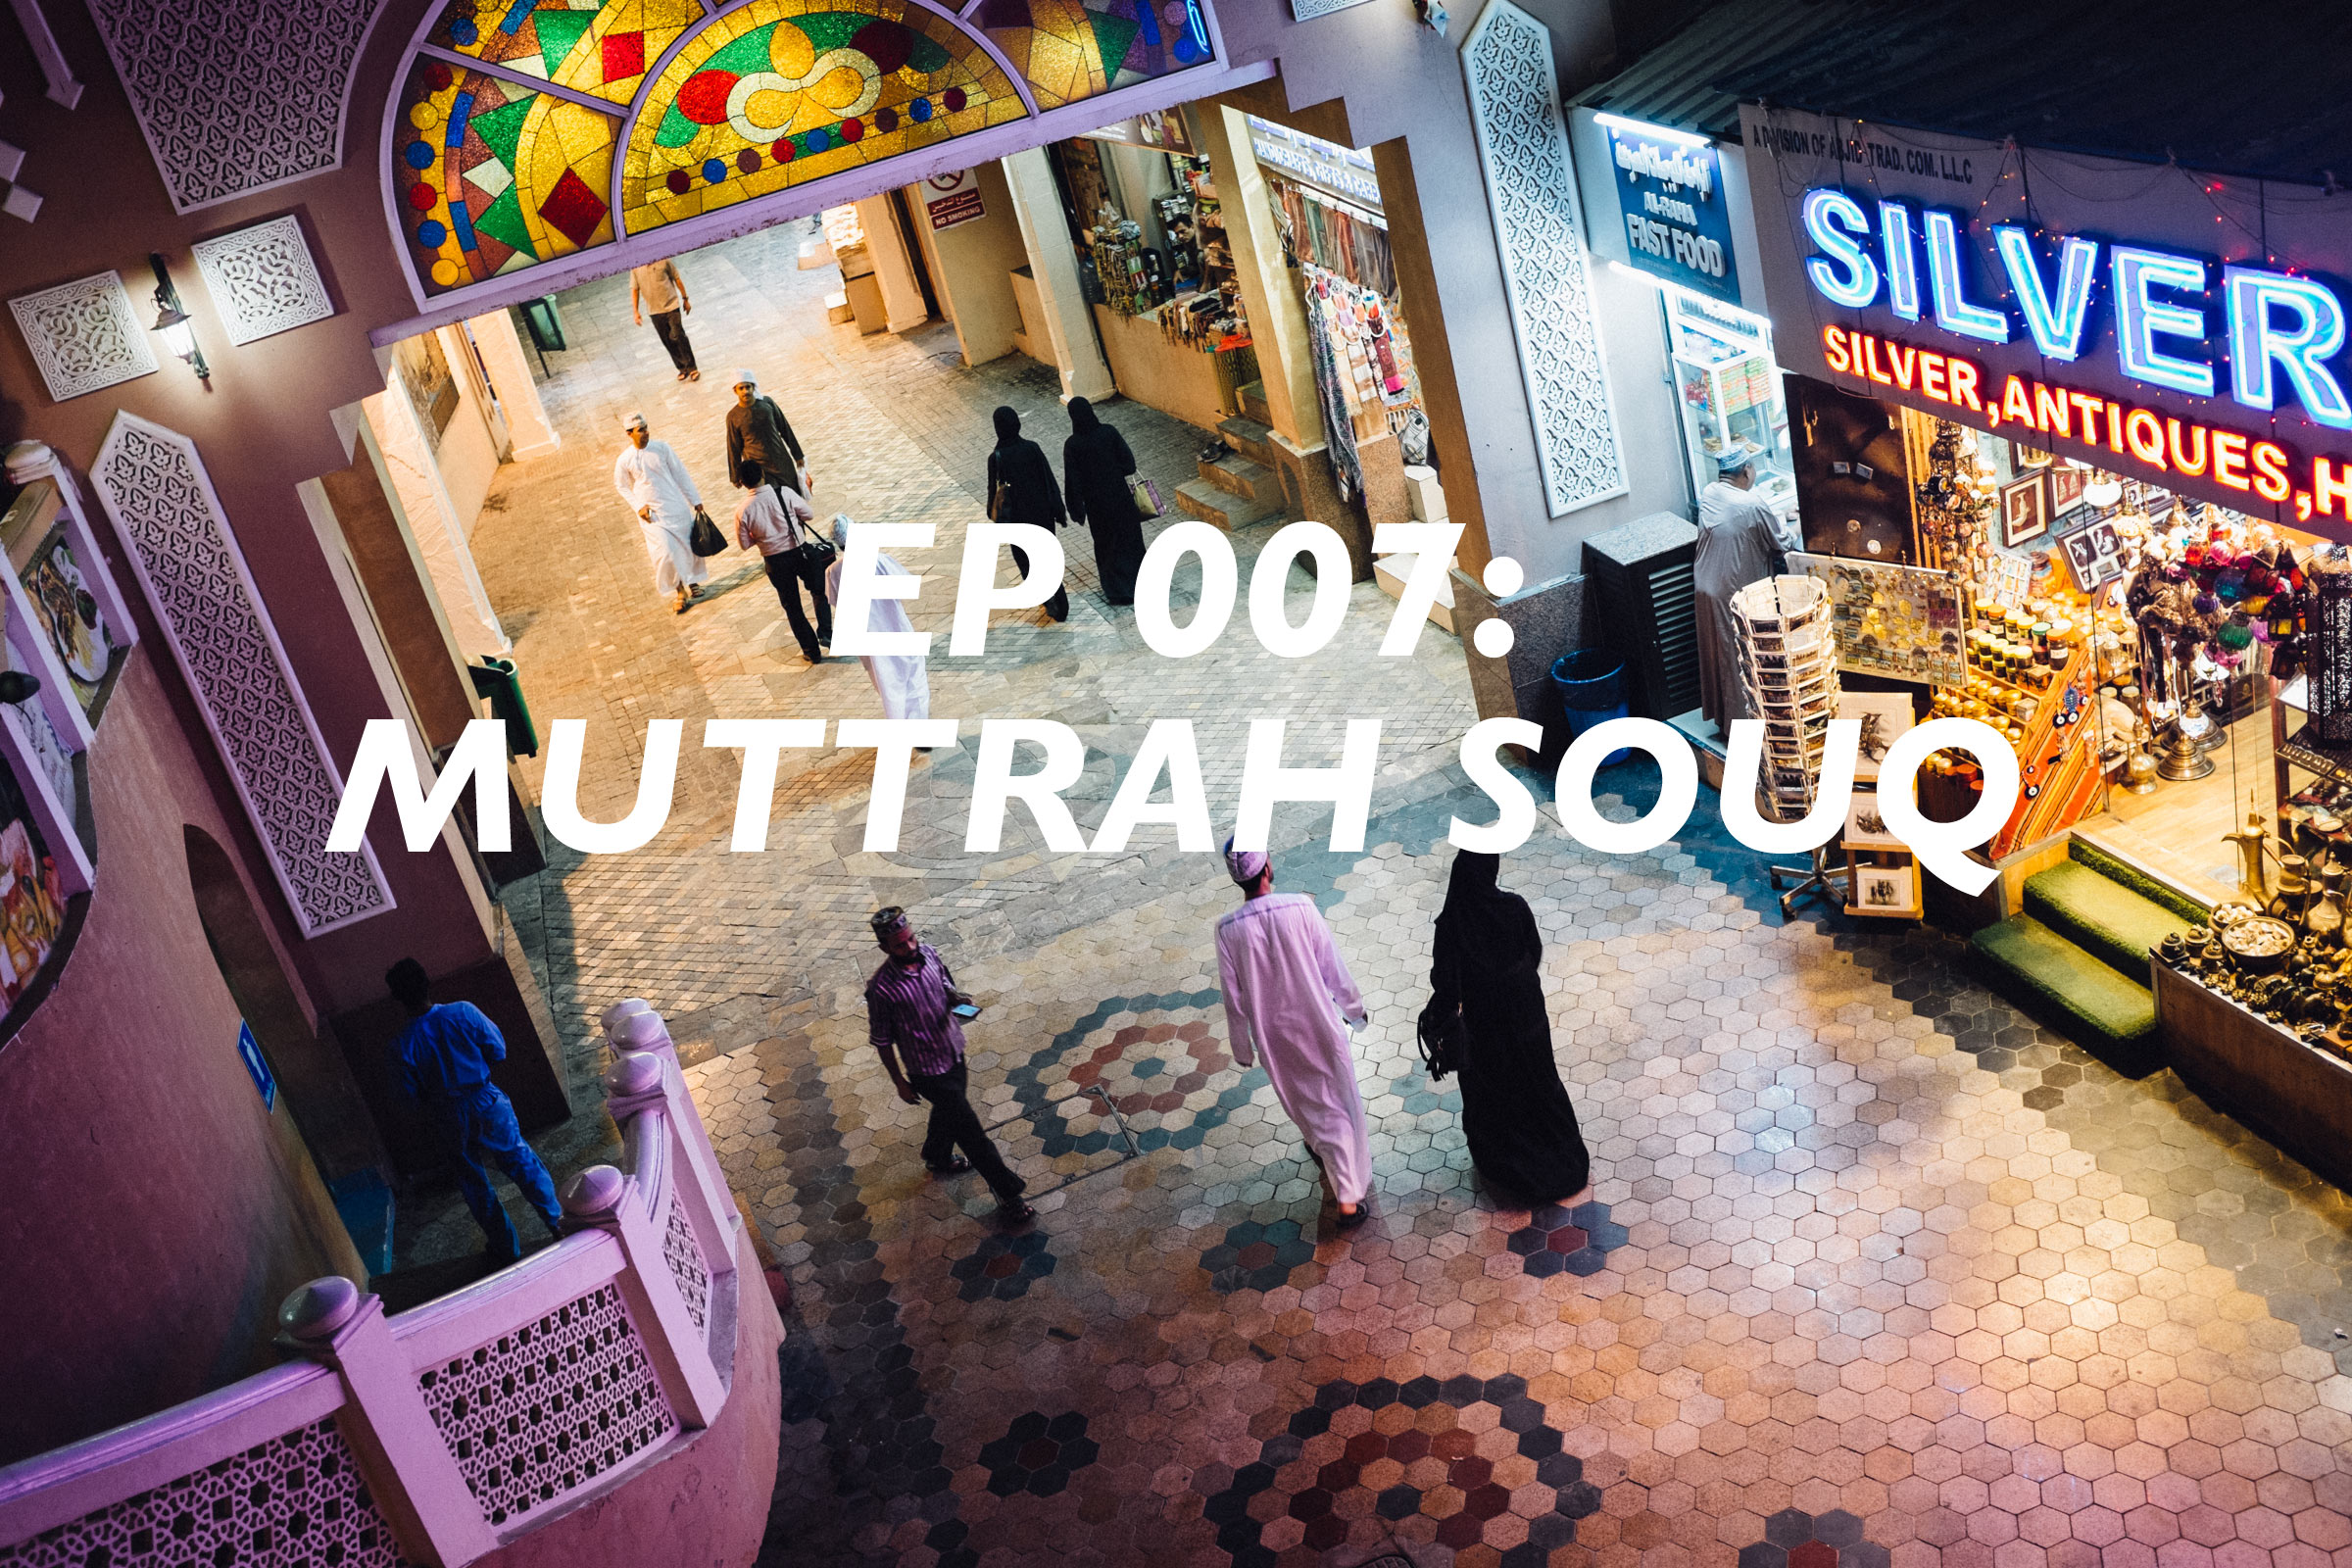 Sultanate Ep 007: Muttrah Souq - Beyond the Route - Oman